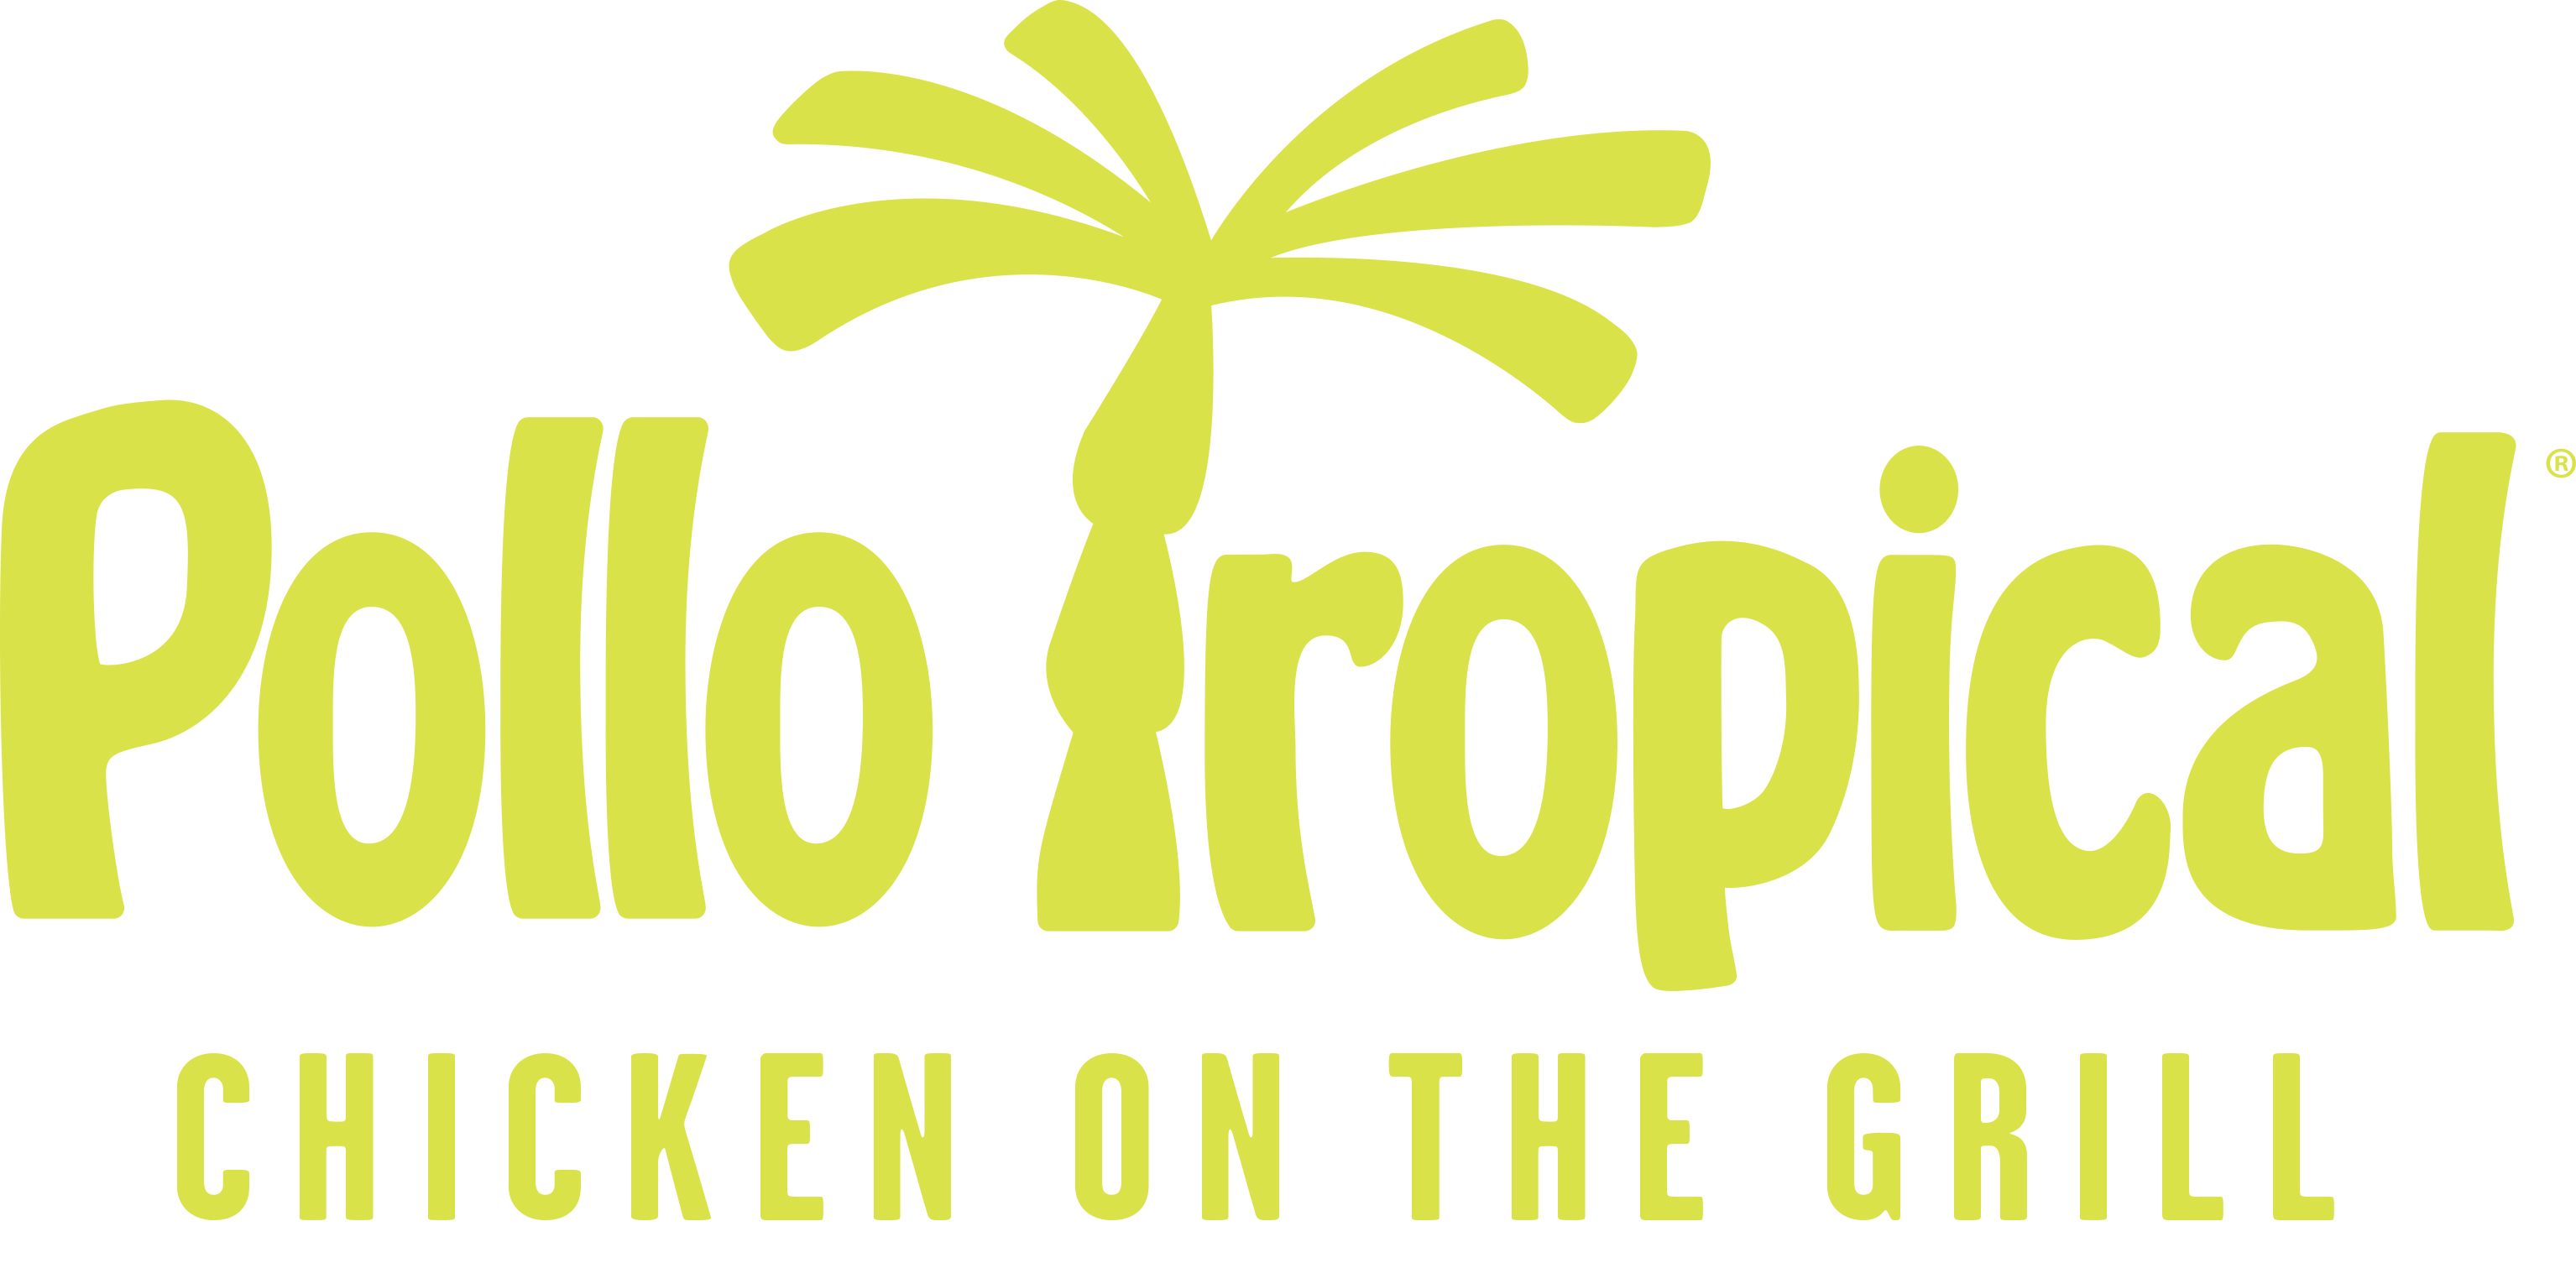 Pollo tropical logo png. Logos